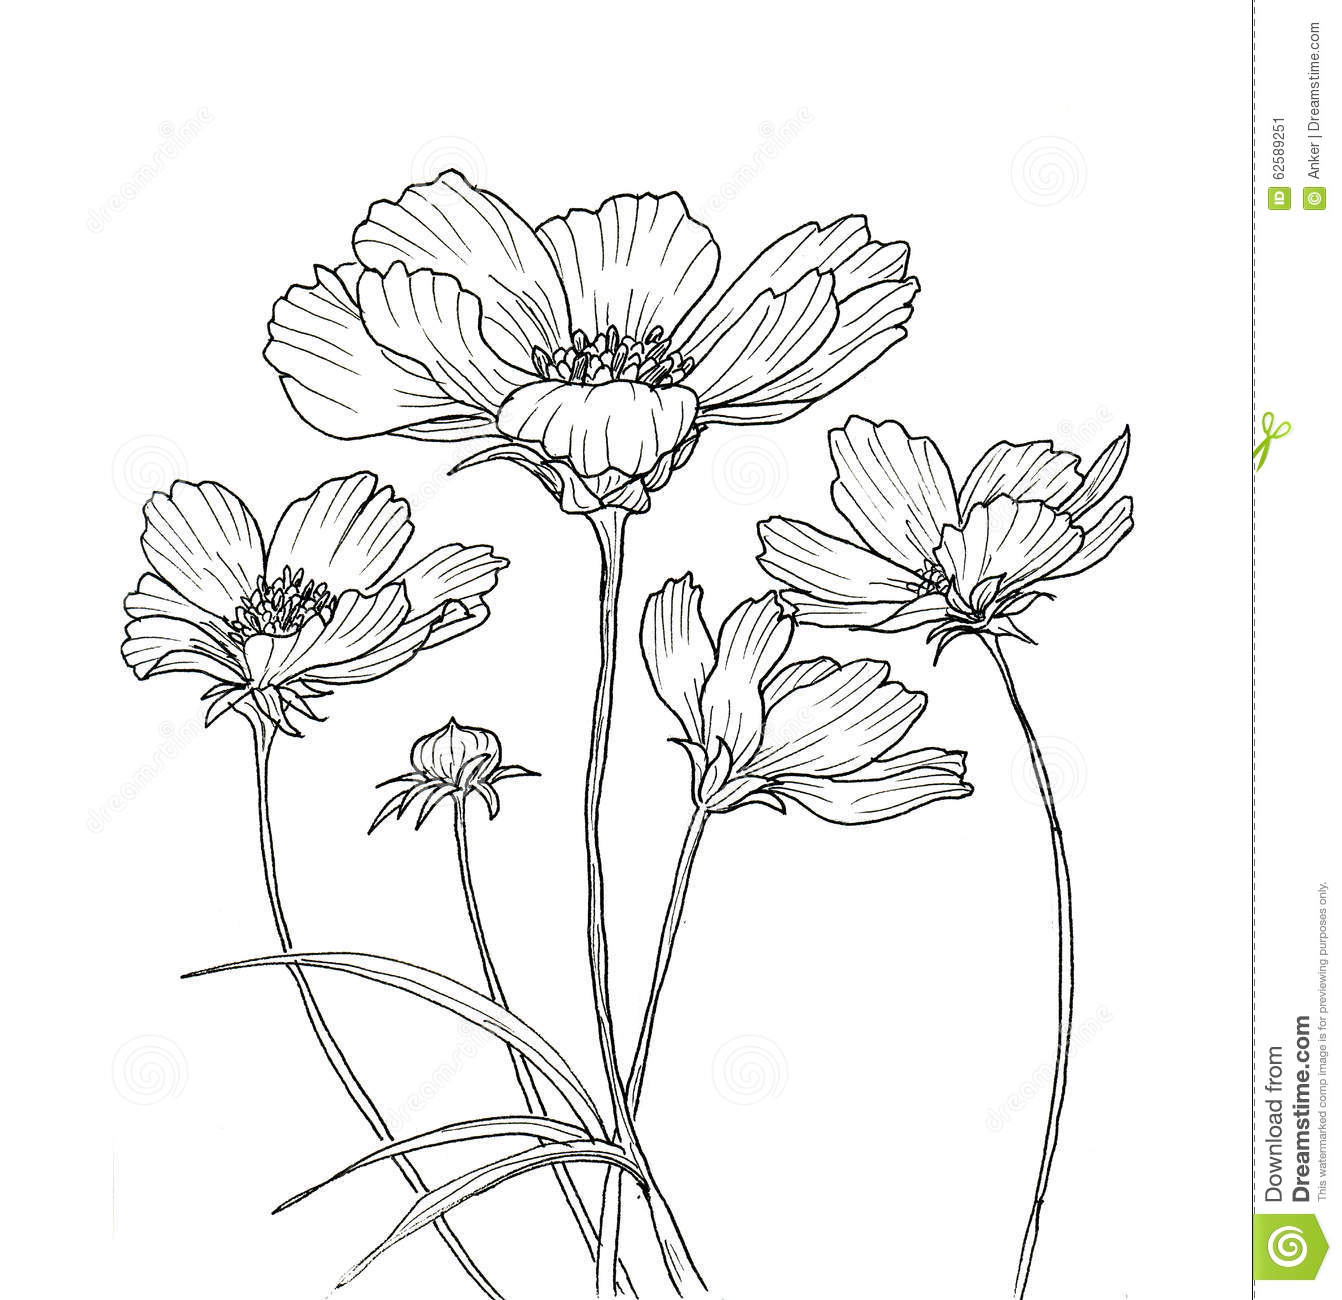 Black Line Flower Drawing : List of synonyms and antonyms the word ink drawings